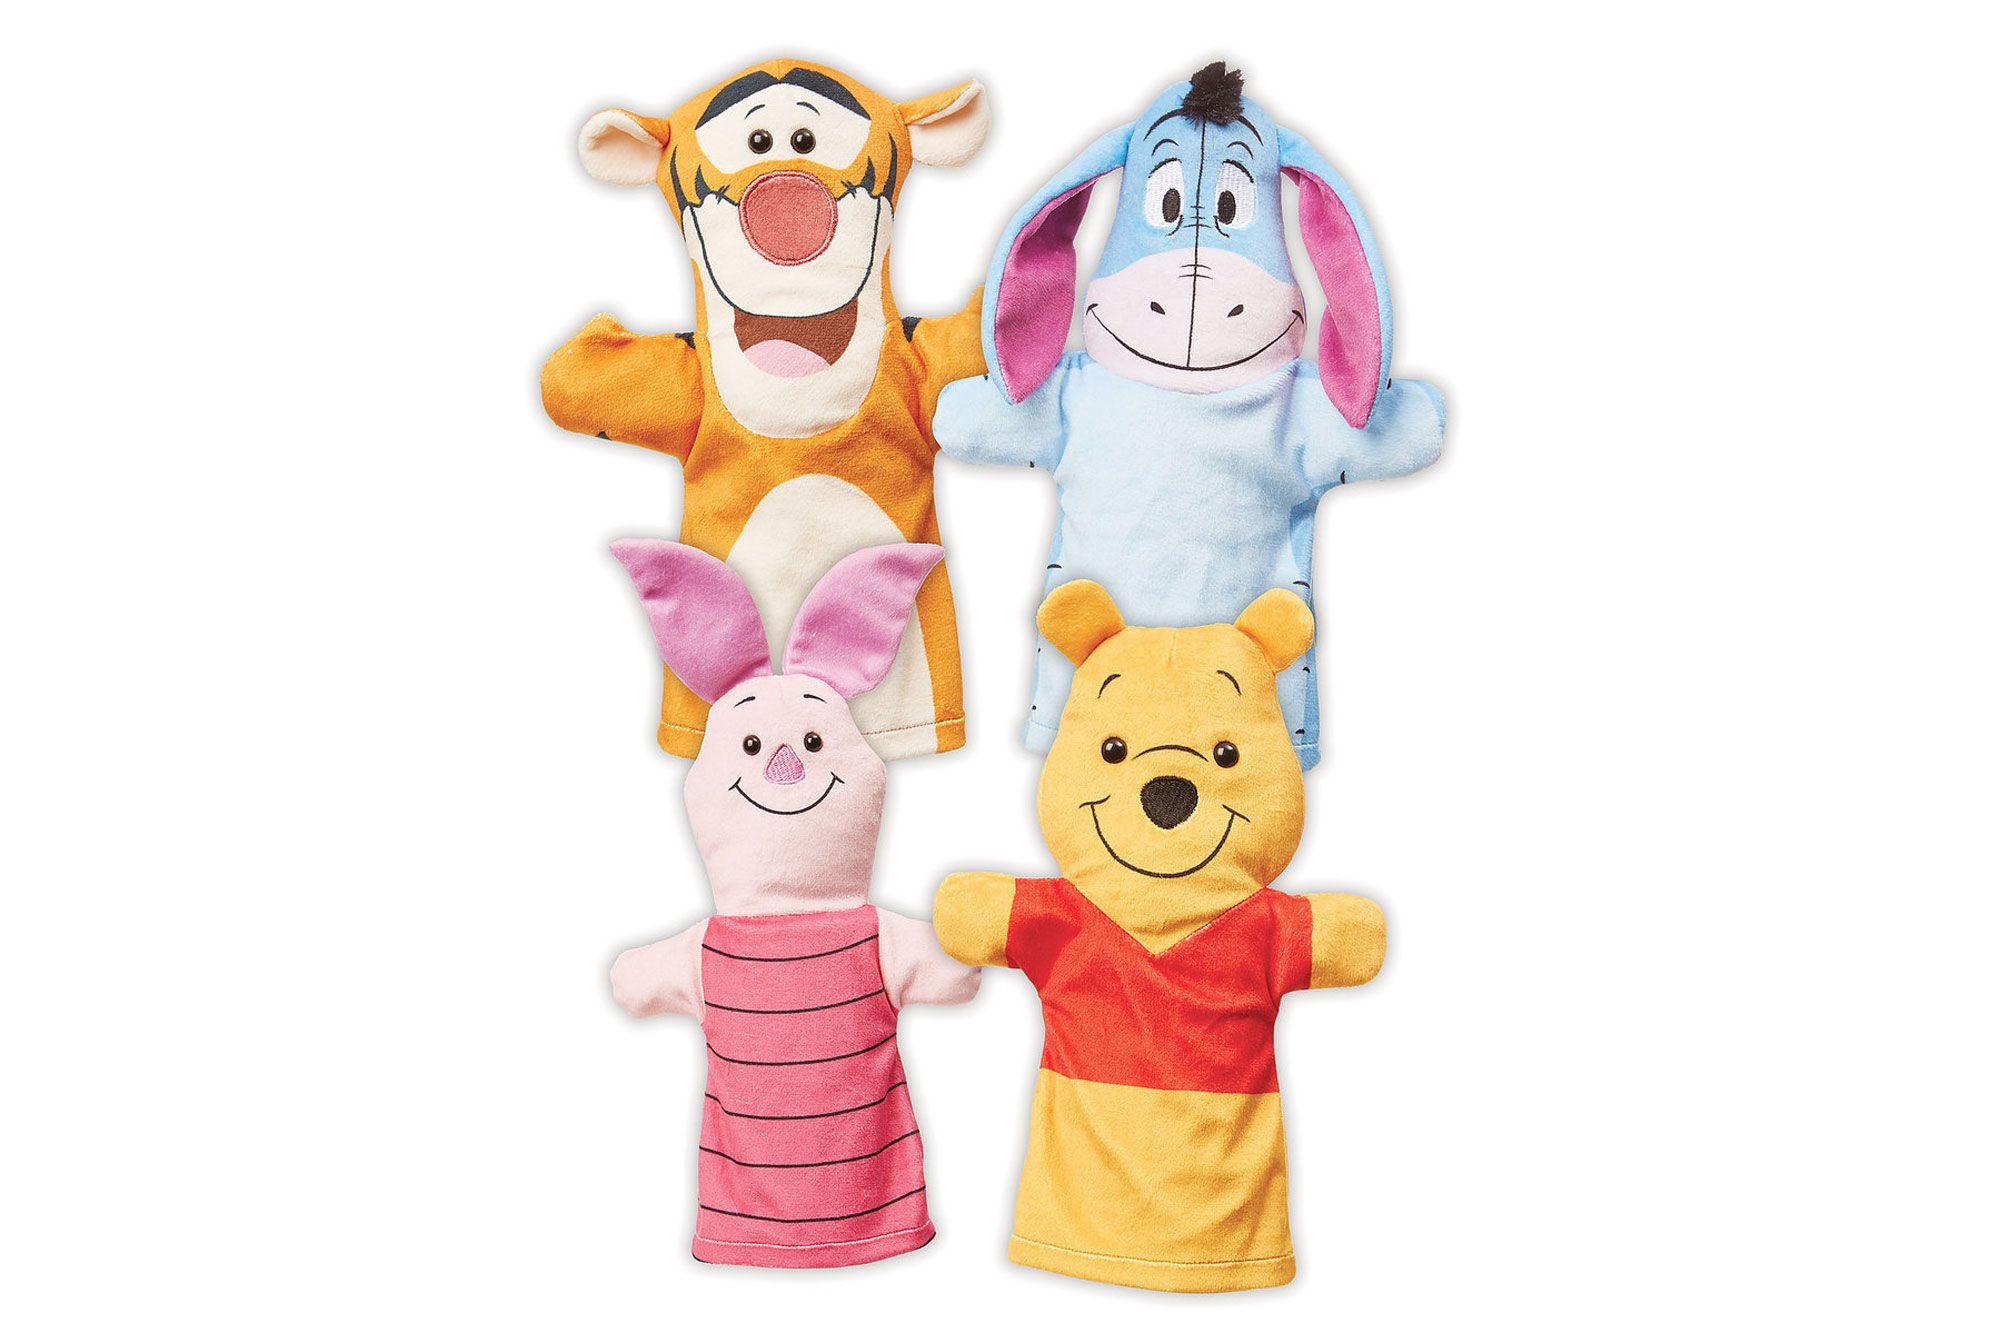 Holiday Magic from the Mouse! From Pooh to Princesses, Shop 13 of the Cutest Disney Toys